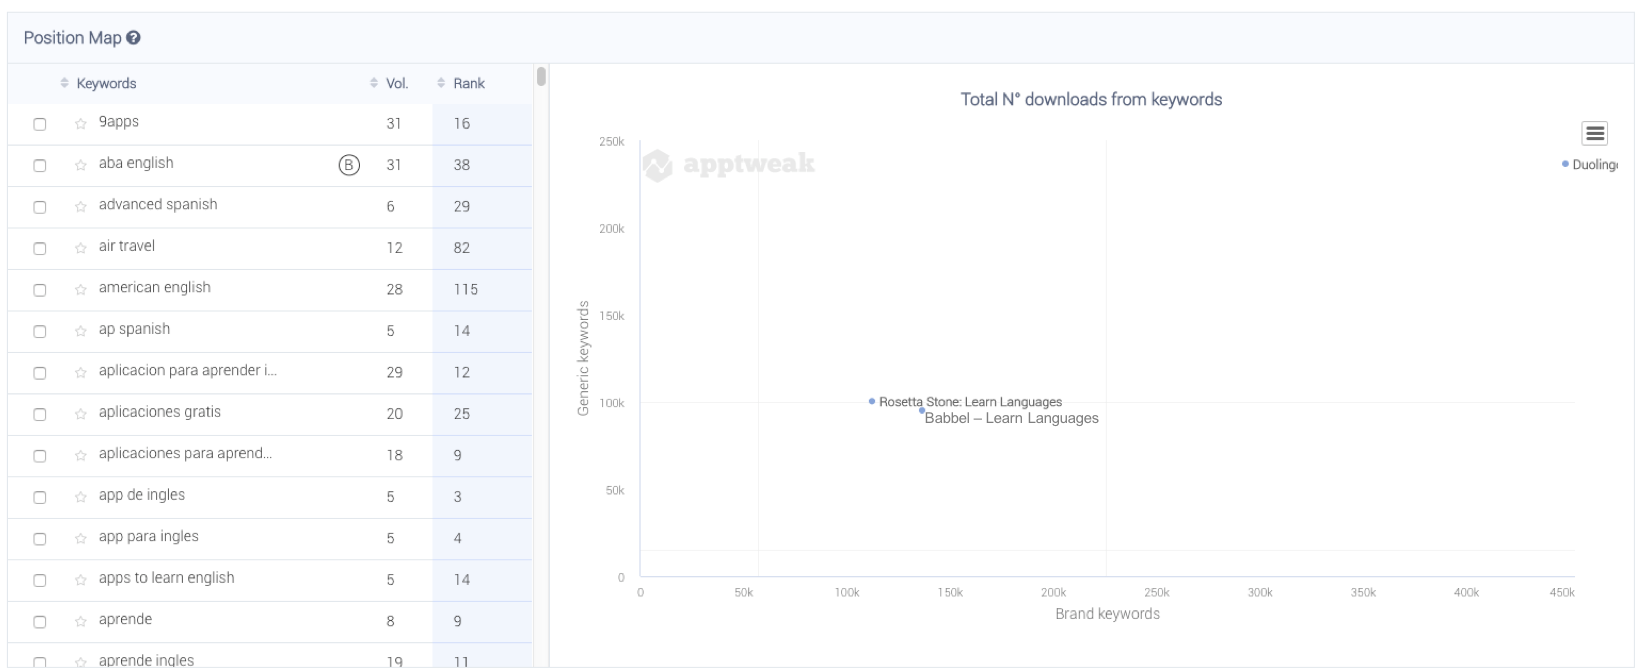 AppTweak ASO Tool Brand vs. Generic Keyword Analysis - Position Map for education apps